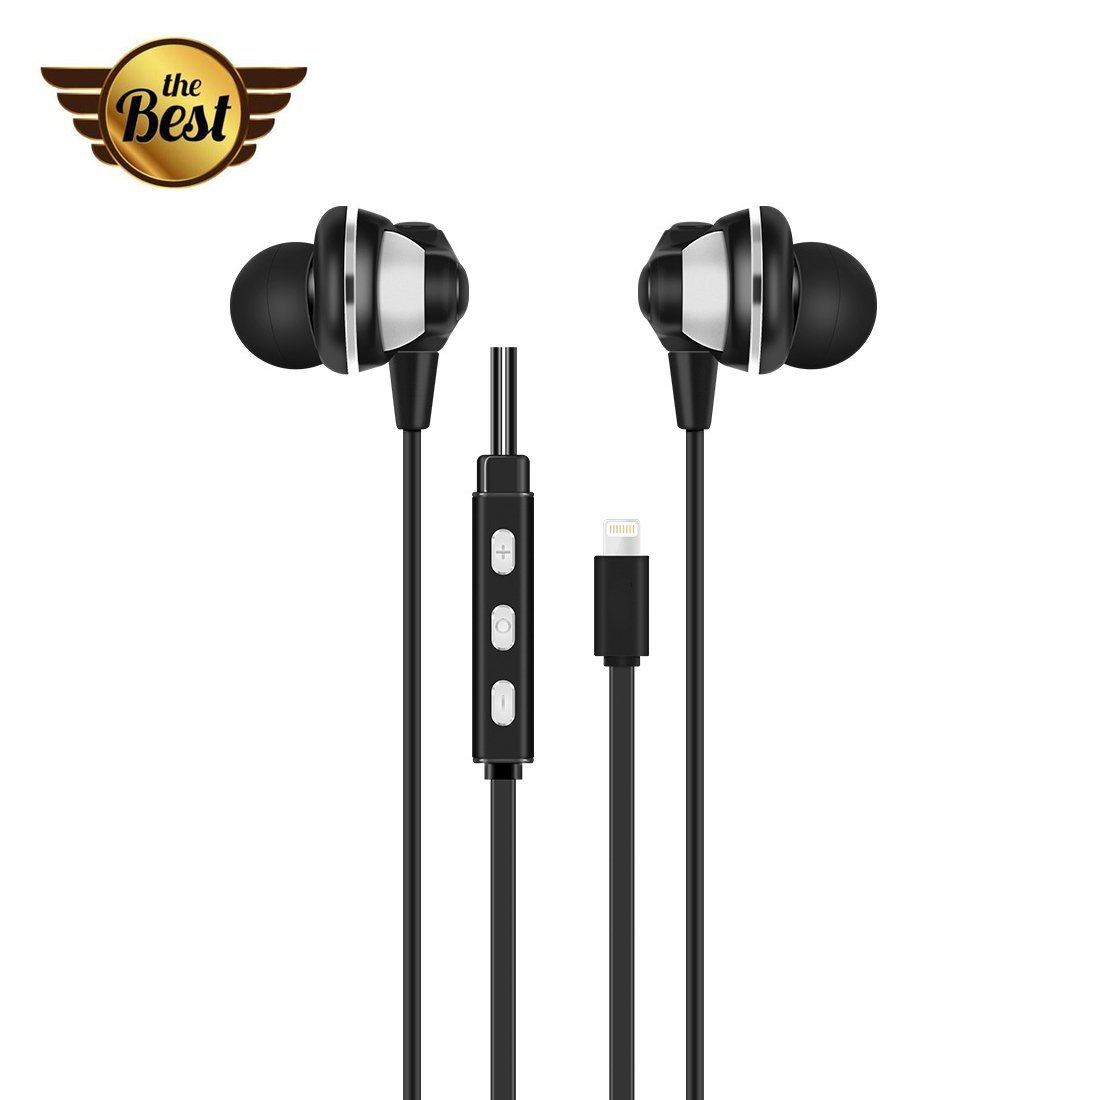 Qiwooode 8Pin Lightning Headset 24-bit Digital Audio In-Ear Headphones with Volume Control and Mic for iPhone 7 / iphone 7 plus / 6s Plus / ipad / ipod (Black)